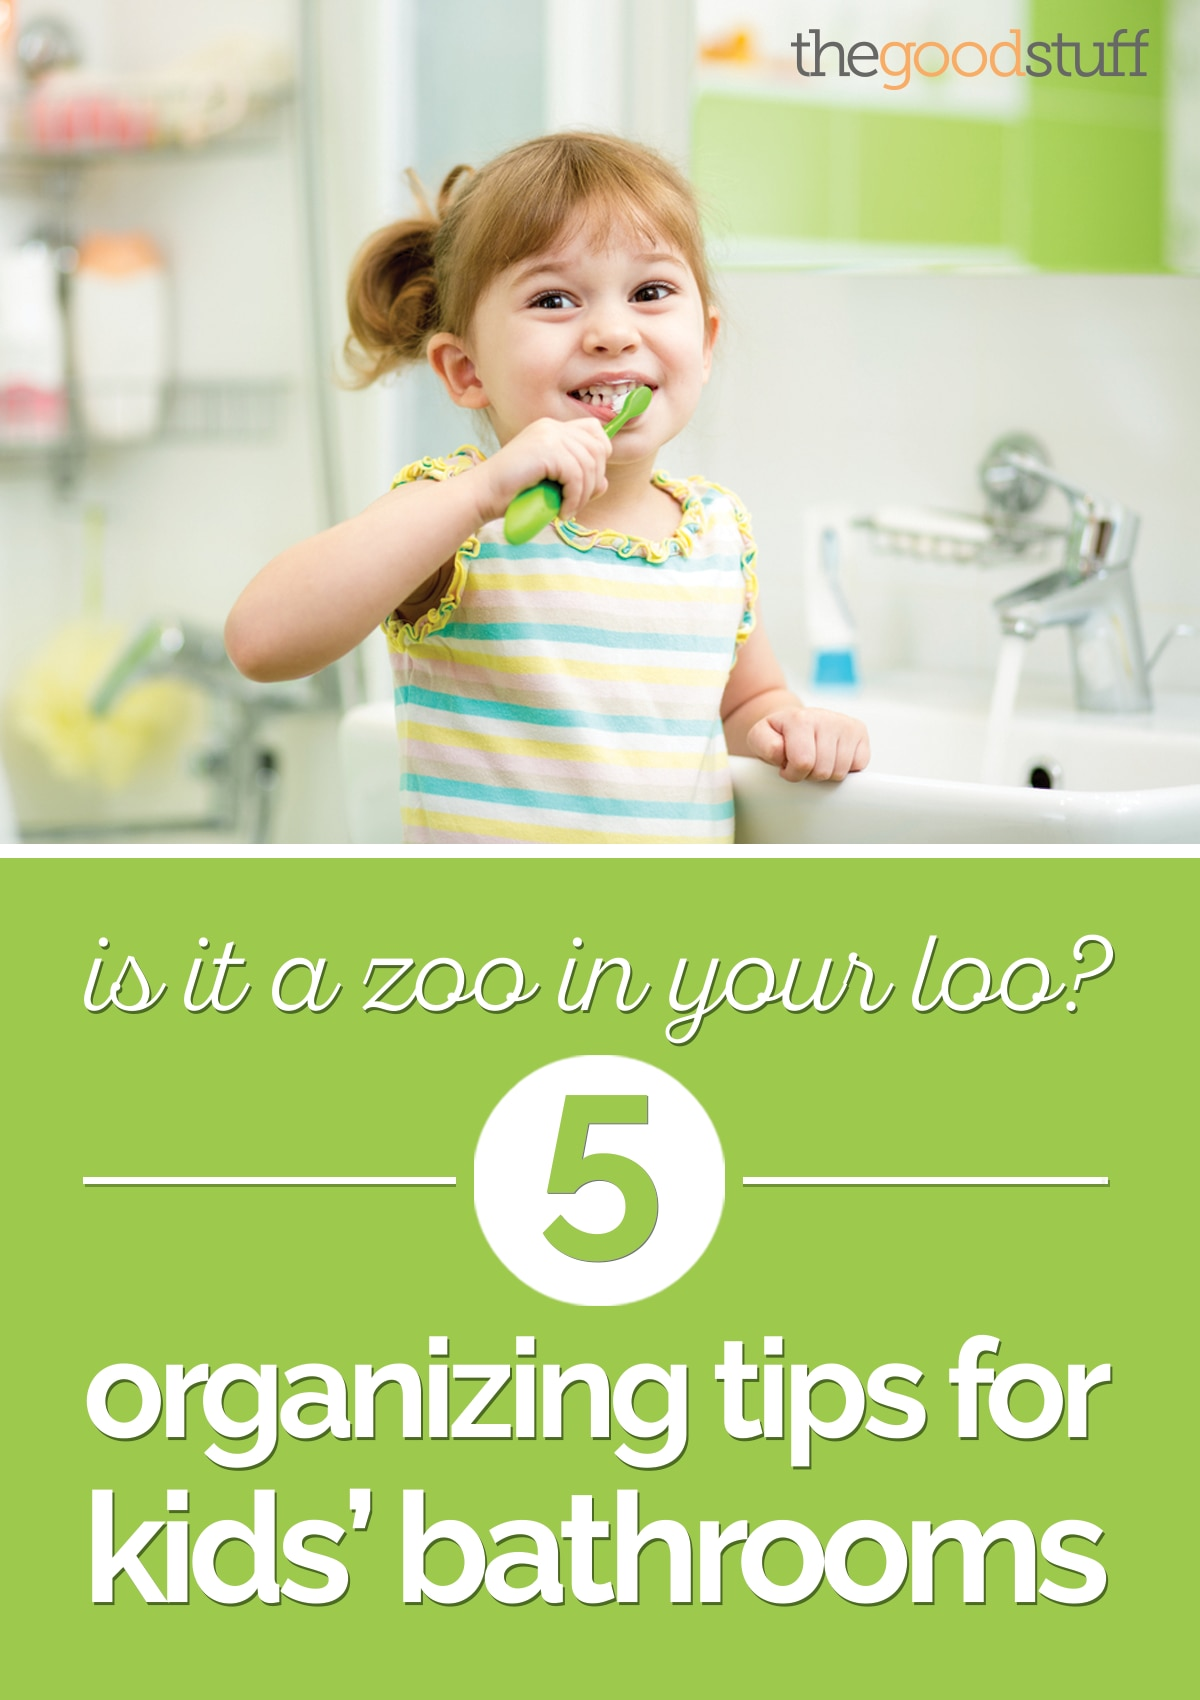 Is It a Zoo in Your Loo? 5 Organizing Tips for Kids' Bathrooms |thegoodstuff